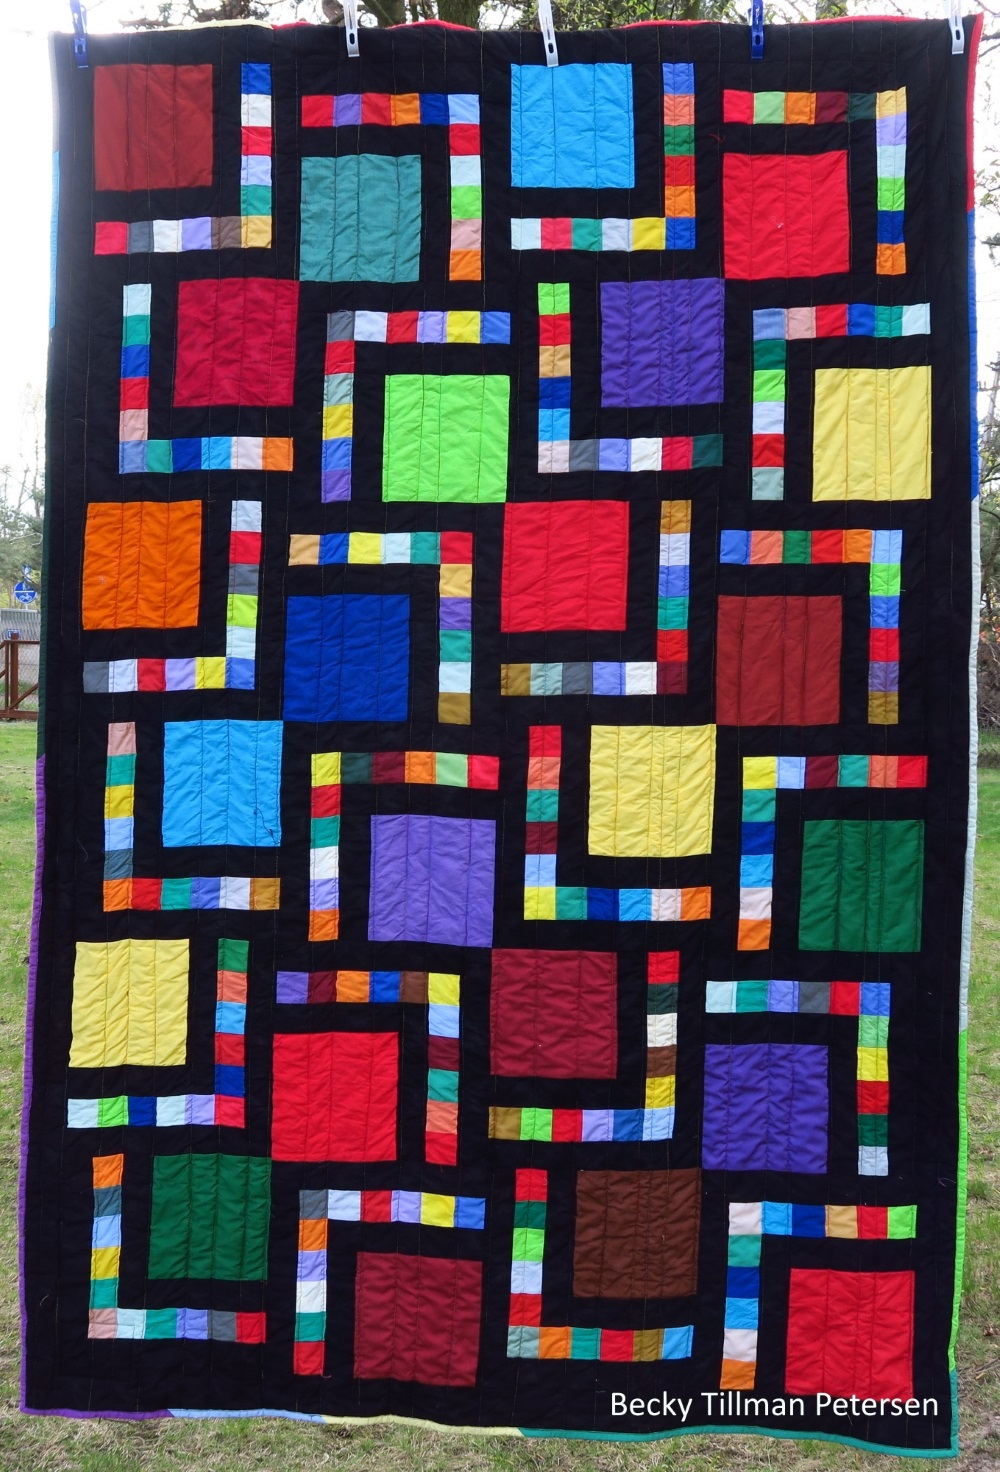 A simple but effective charity quilt - I made 7 of these a couple of years ago. They were all very quickly chosen by various recipients